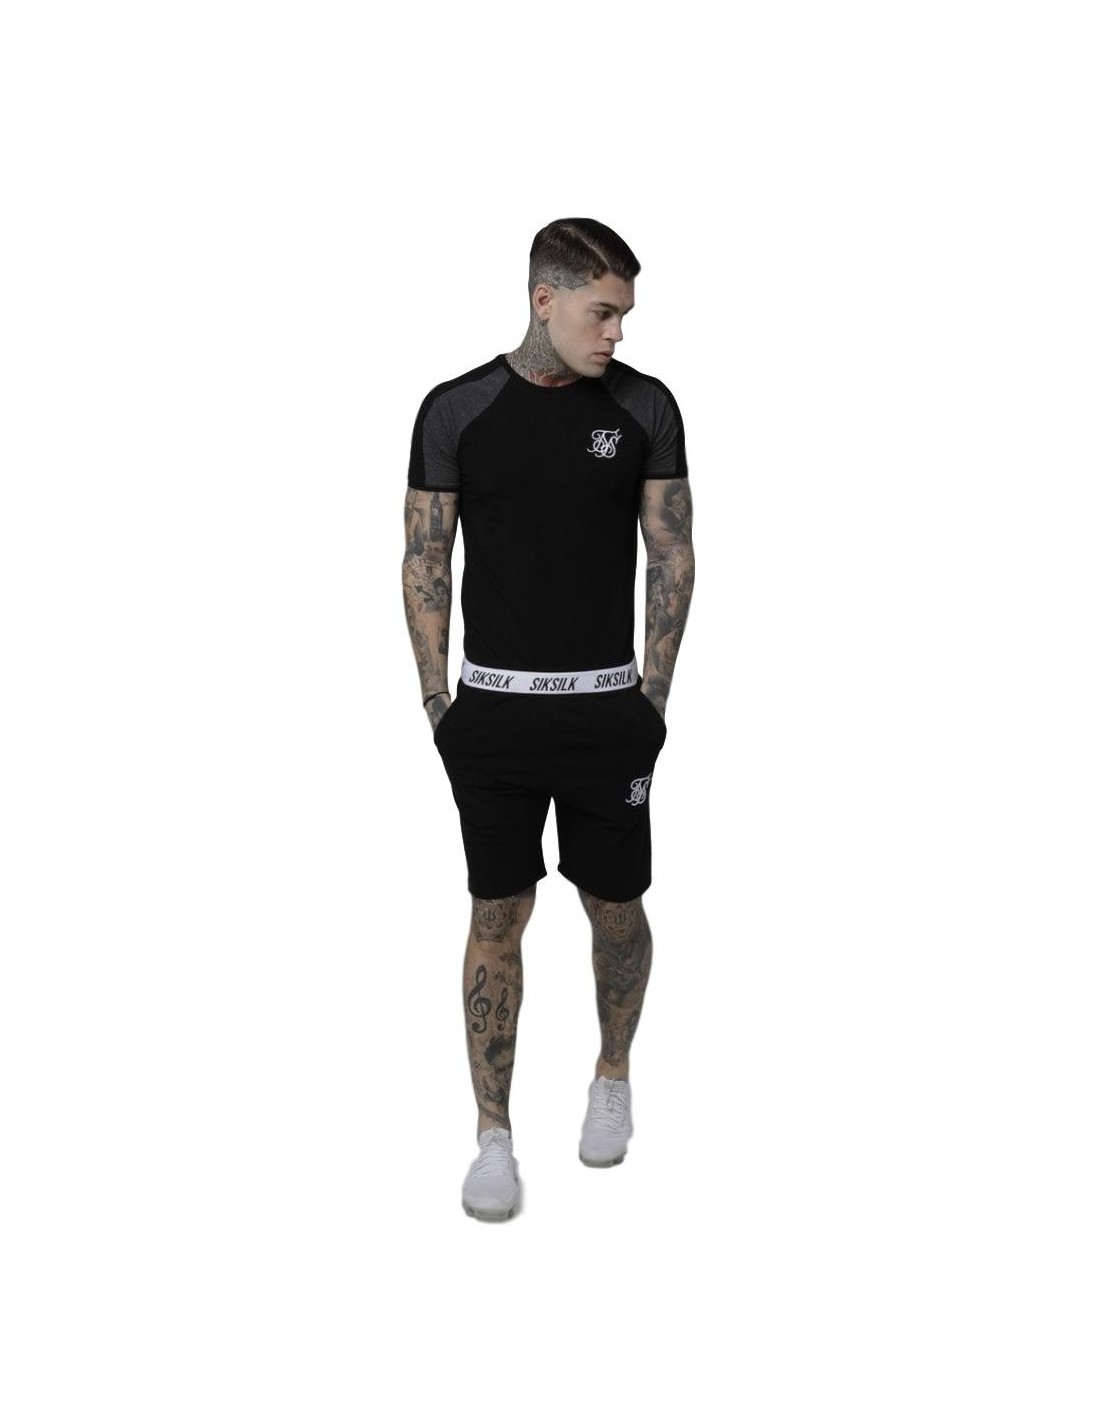 Shirt By SikSilk Athena RacerBack Bralette Black